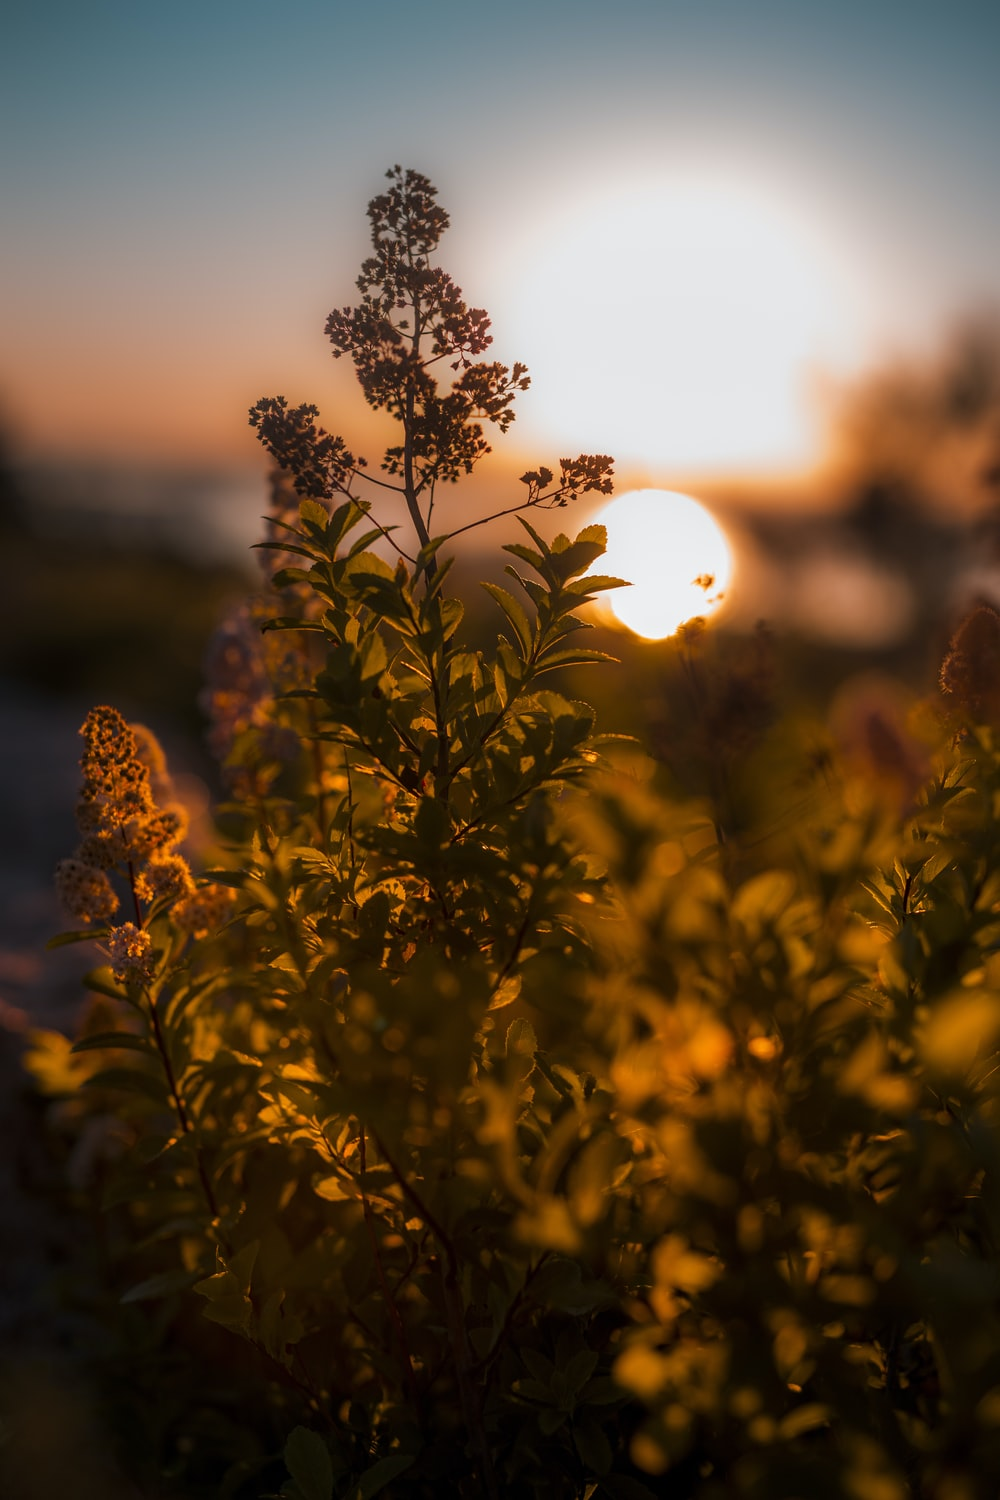 green leafed plant during sunset